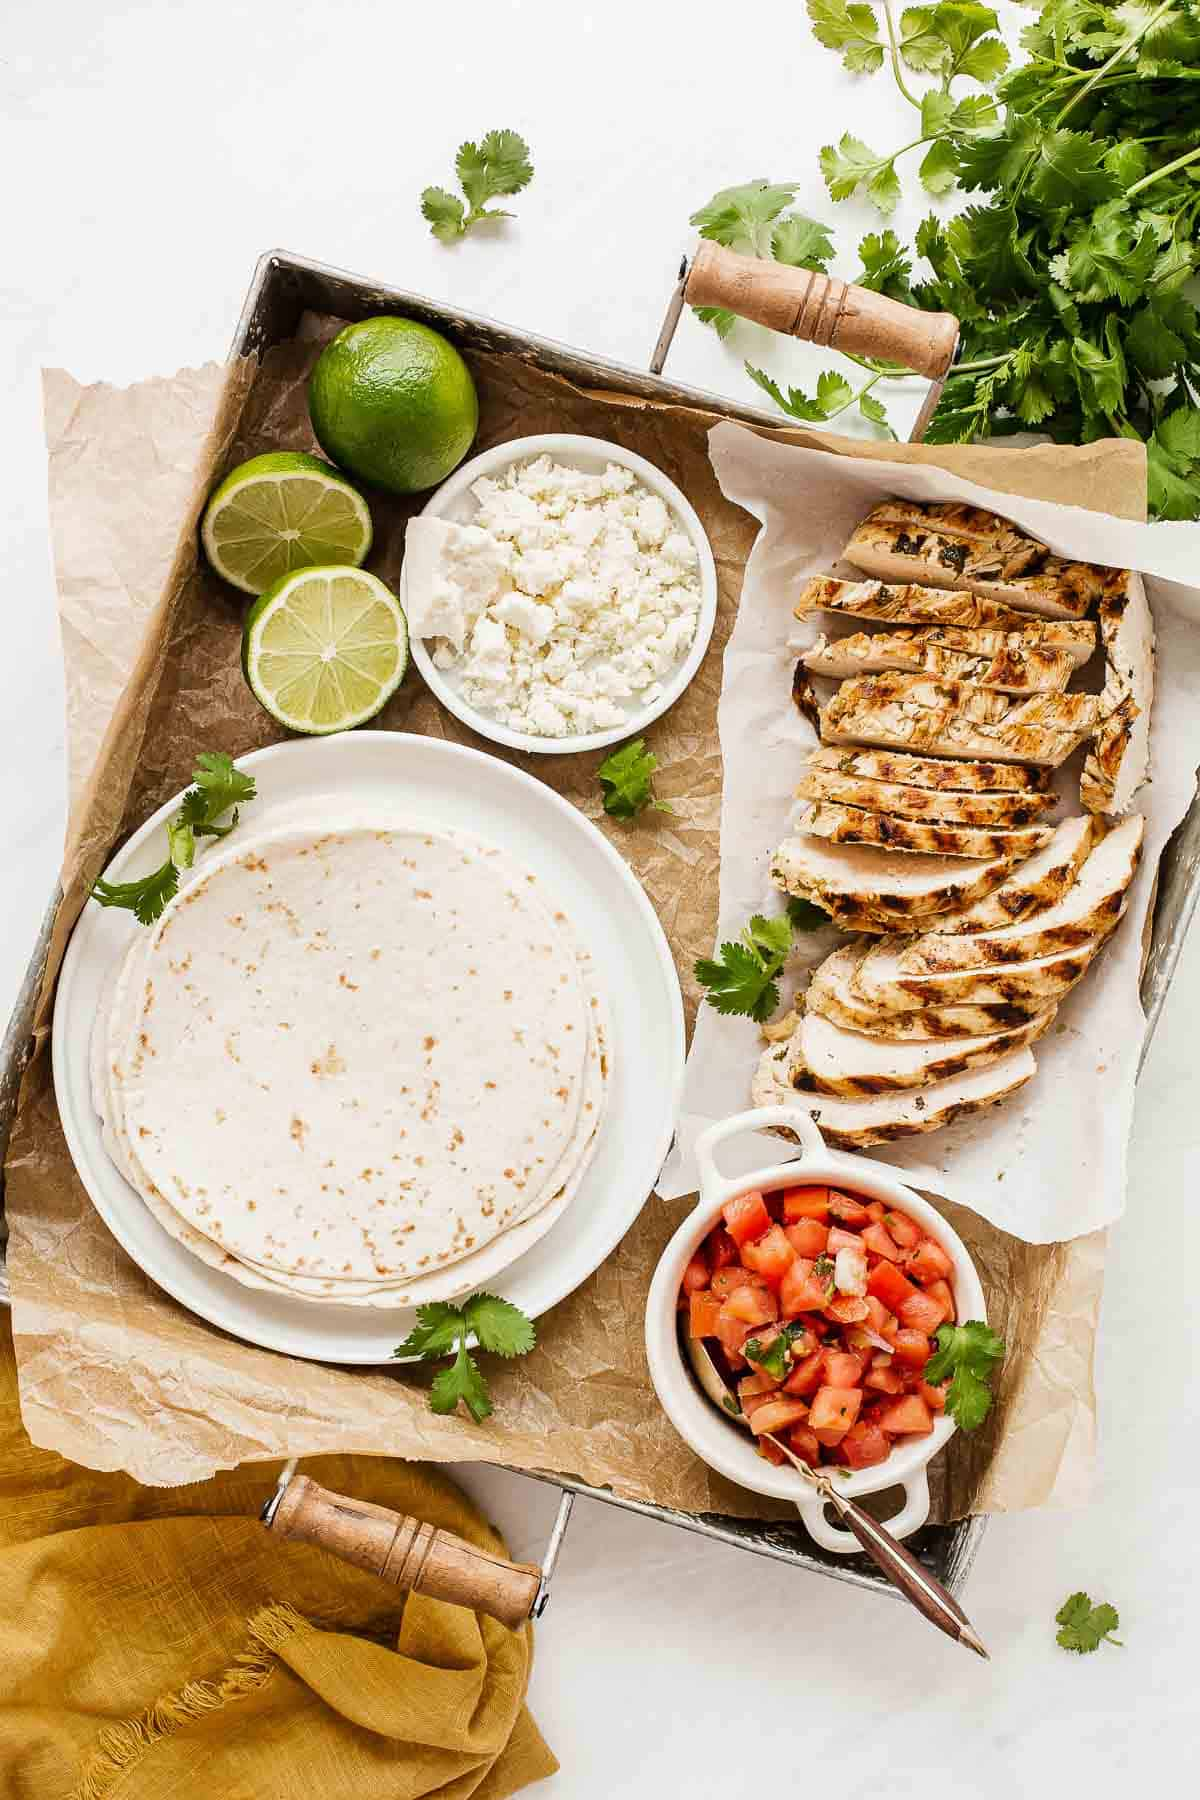 Board of chicken taco ingredients.